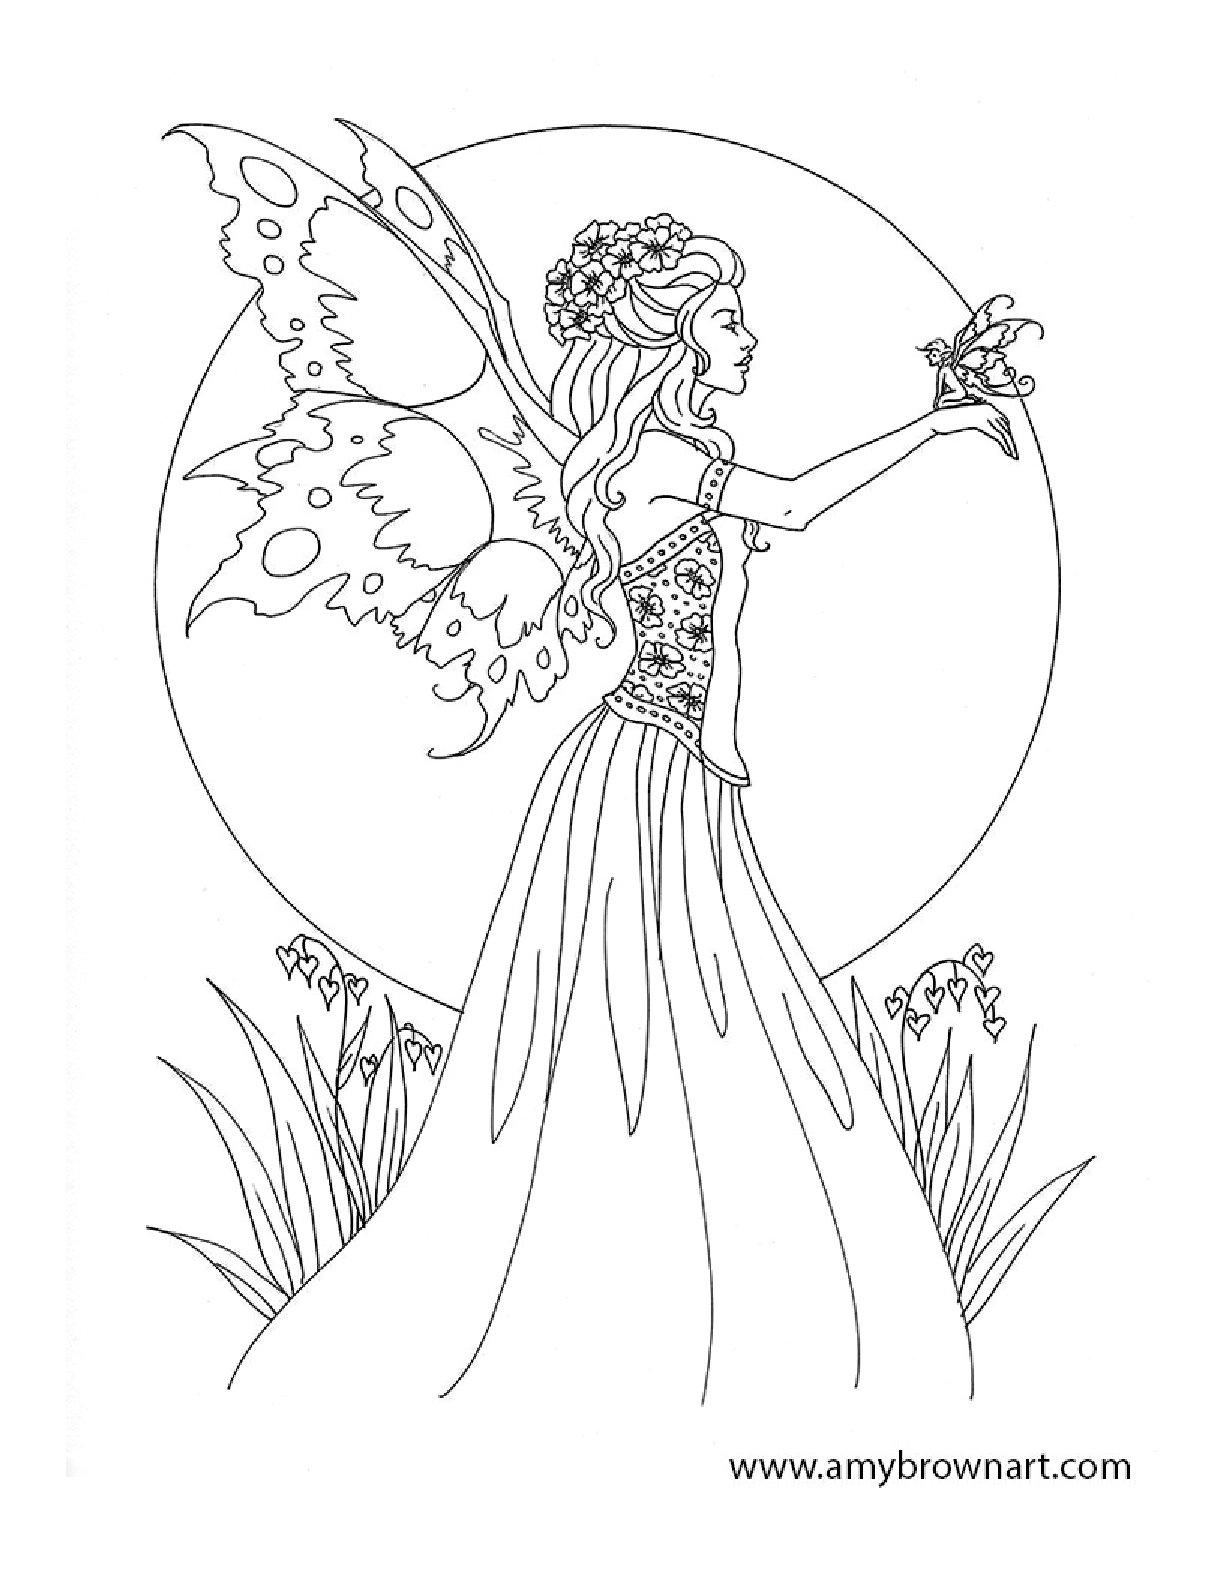 Tinkerbell Und Das Geheimnis Der Feenflügel Ausmalbilder : Free Amy Brown Fairy Coloring Pages Fairie Coloring Pages